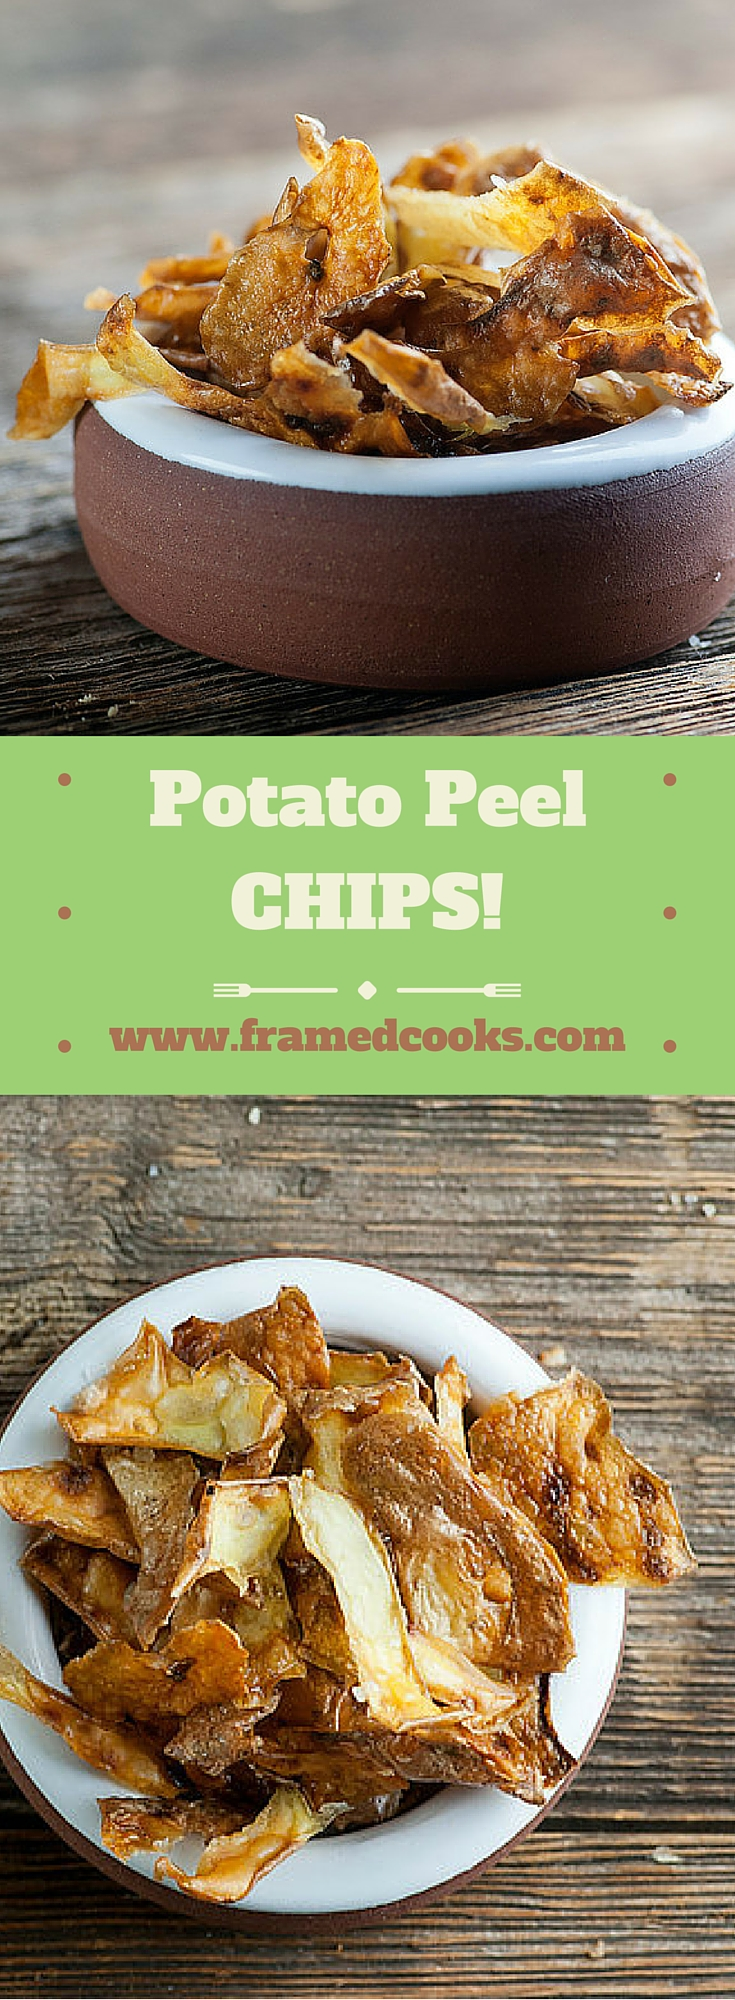 Once you make this recipe for potato peel chips you will never toss those peelings out again!